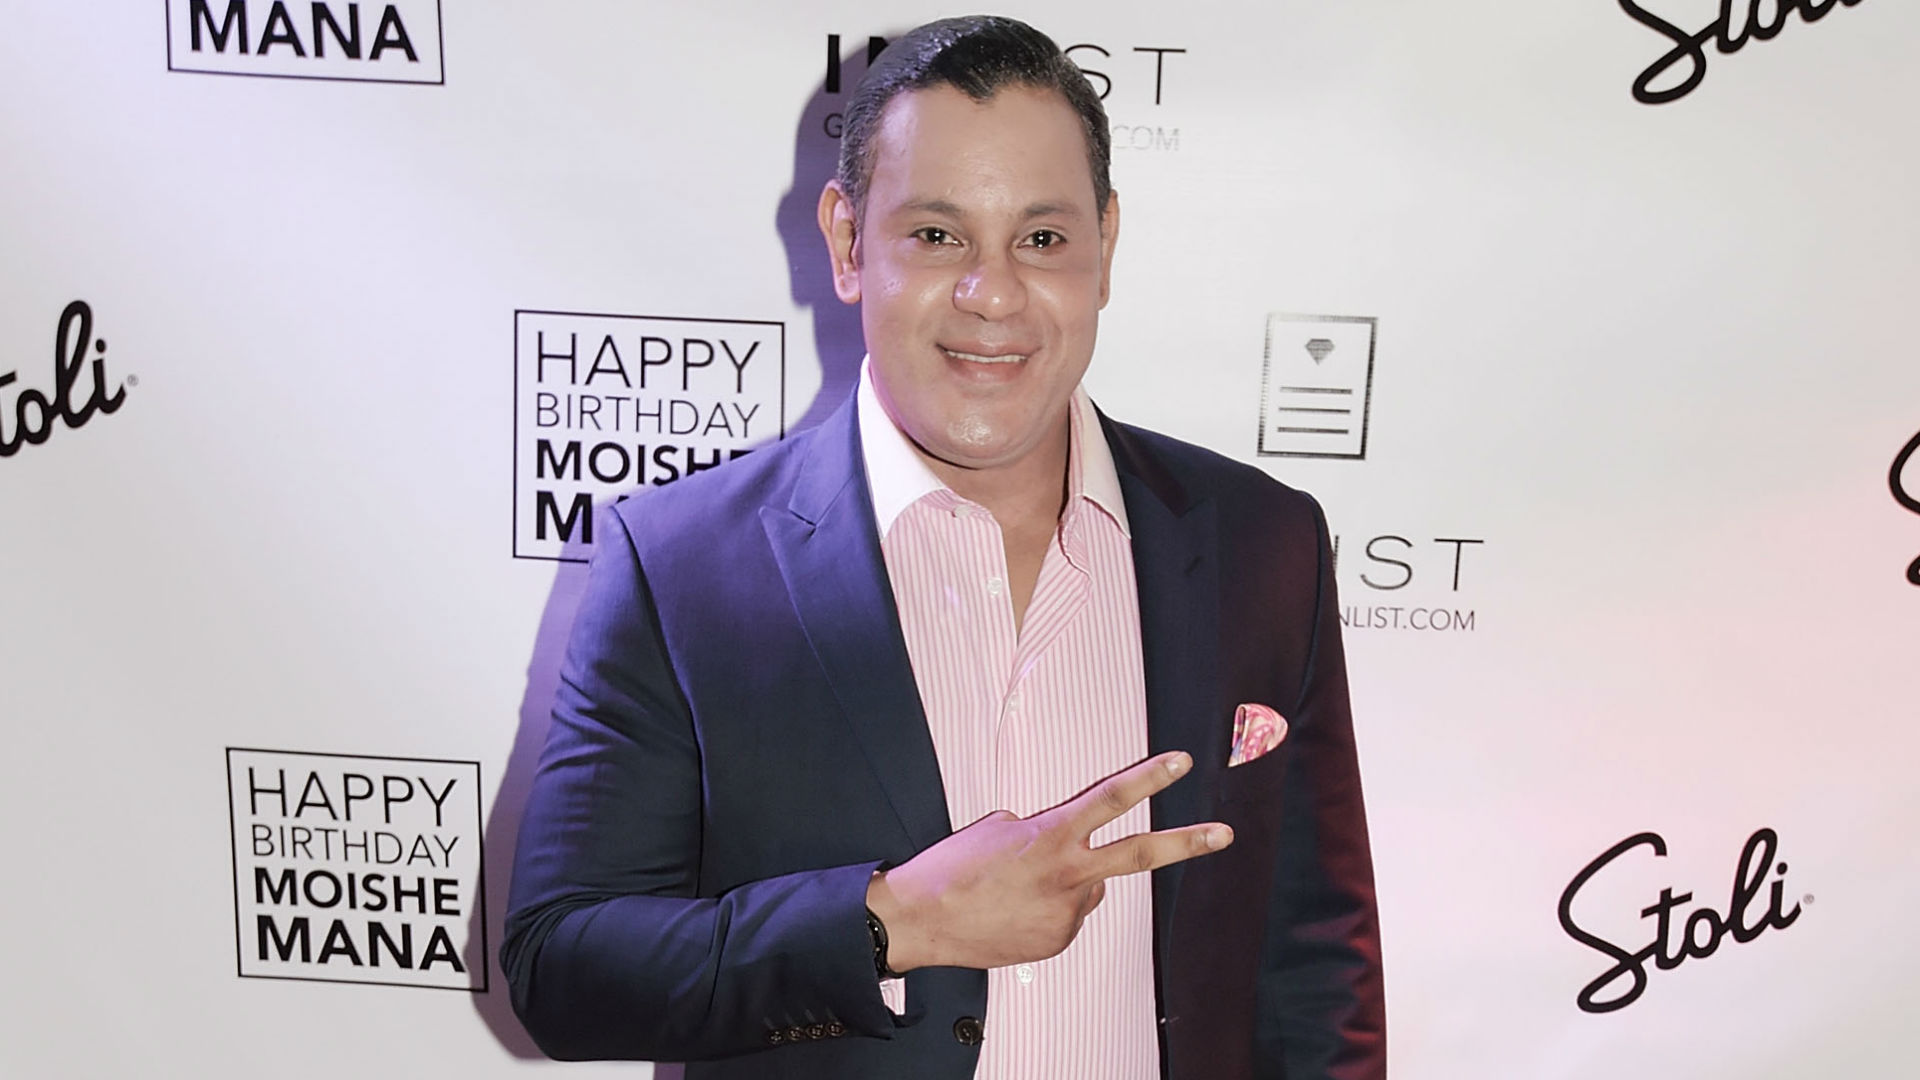 Sammy Sosa Keeps Changing His Look, and It's Pretty Sad